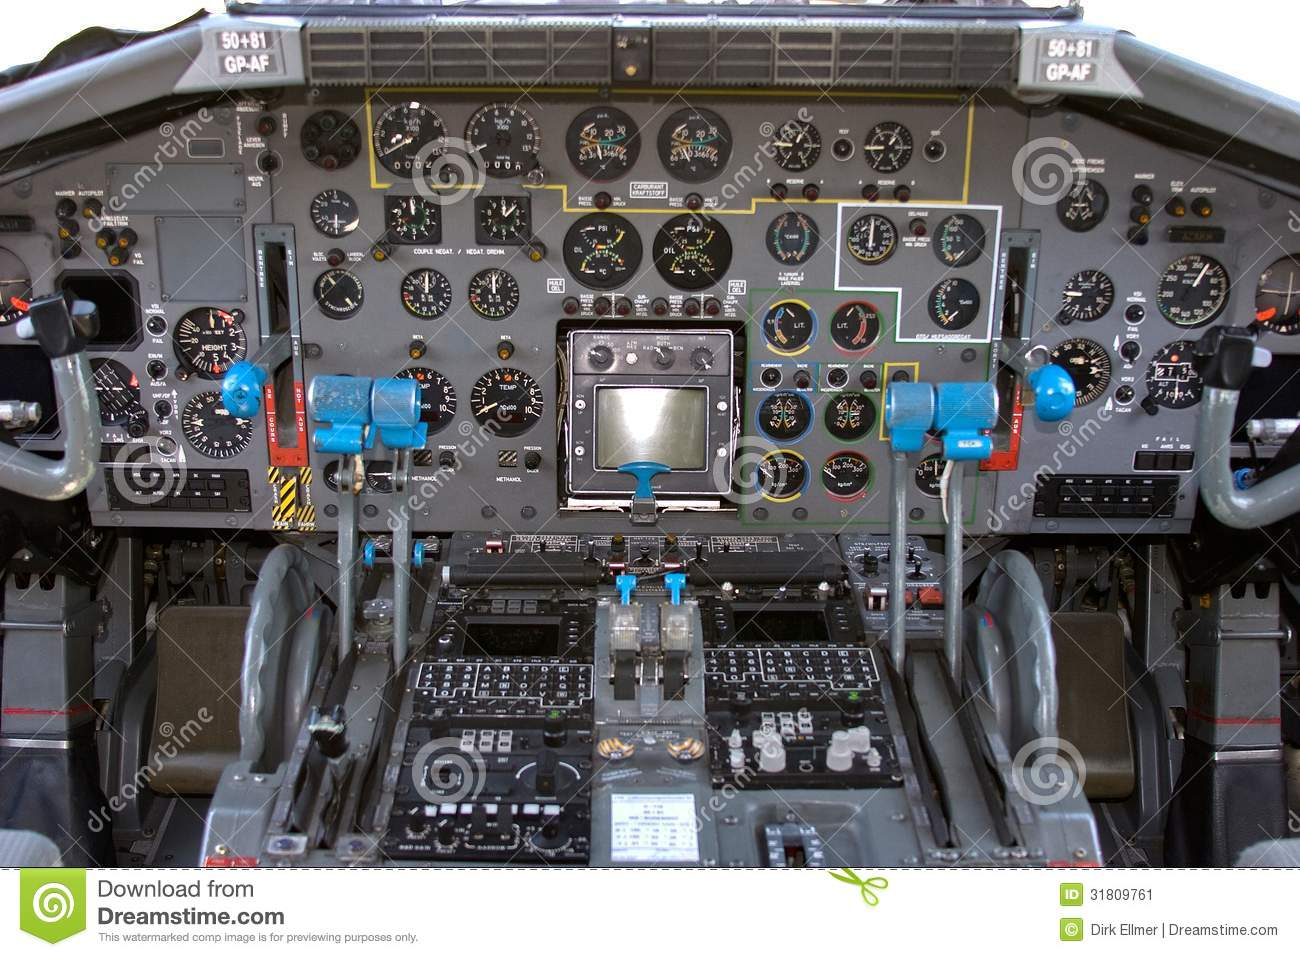 Cockpit of a Transall C-160 Transport Air plane German Air Force.